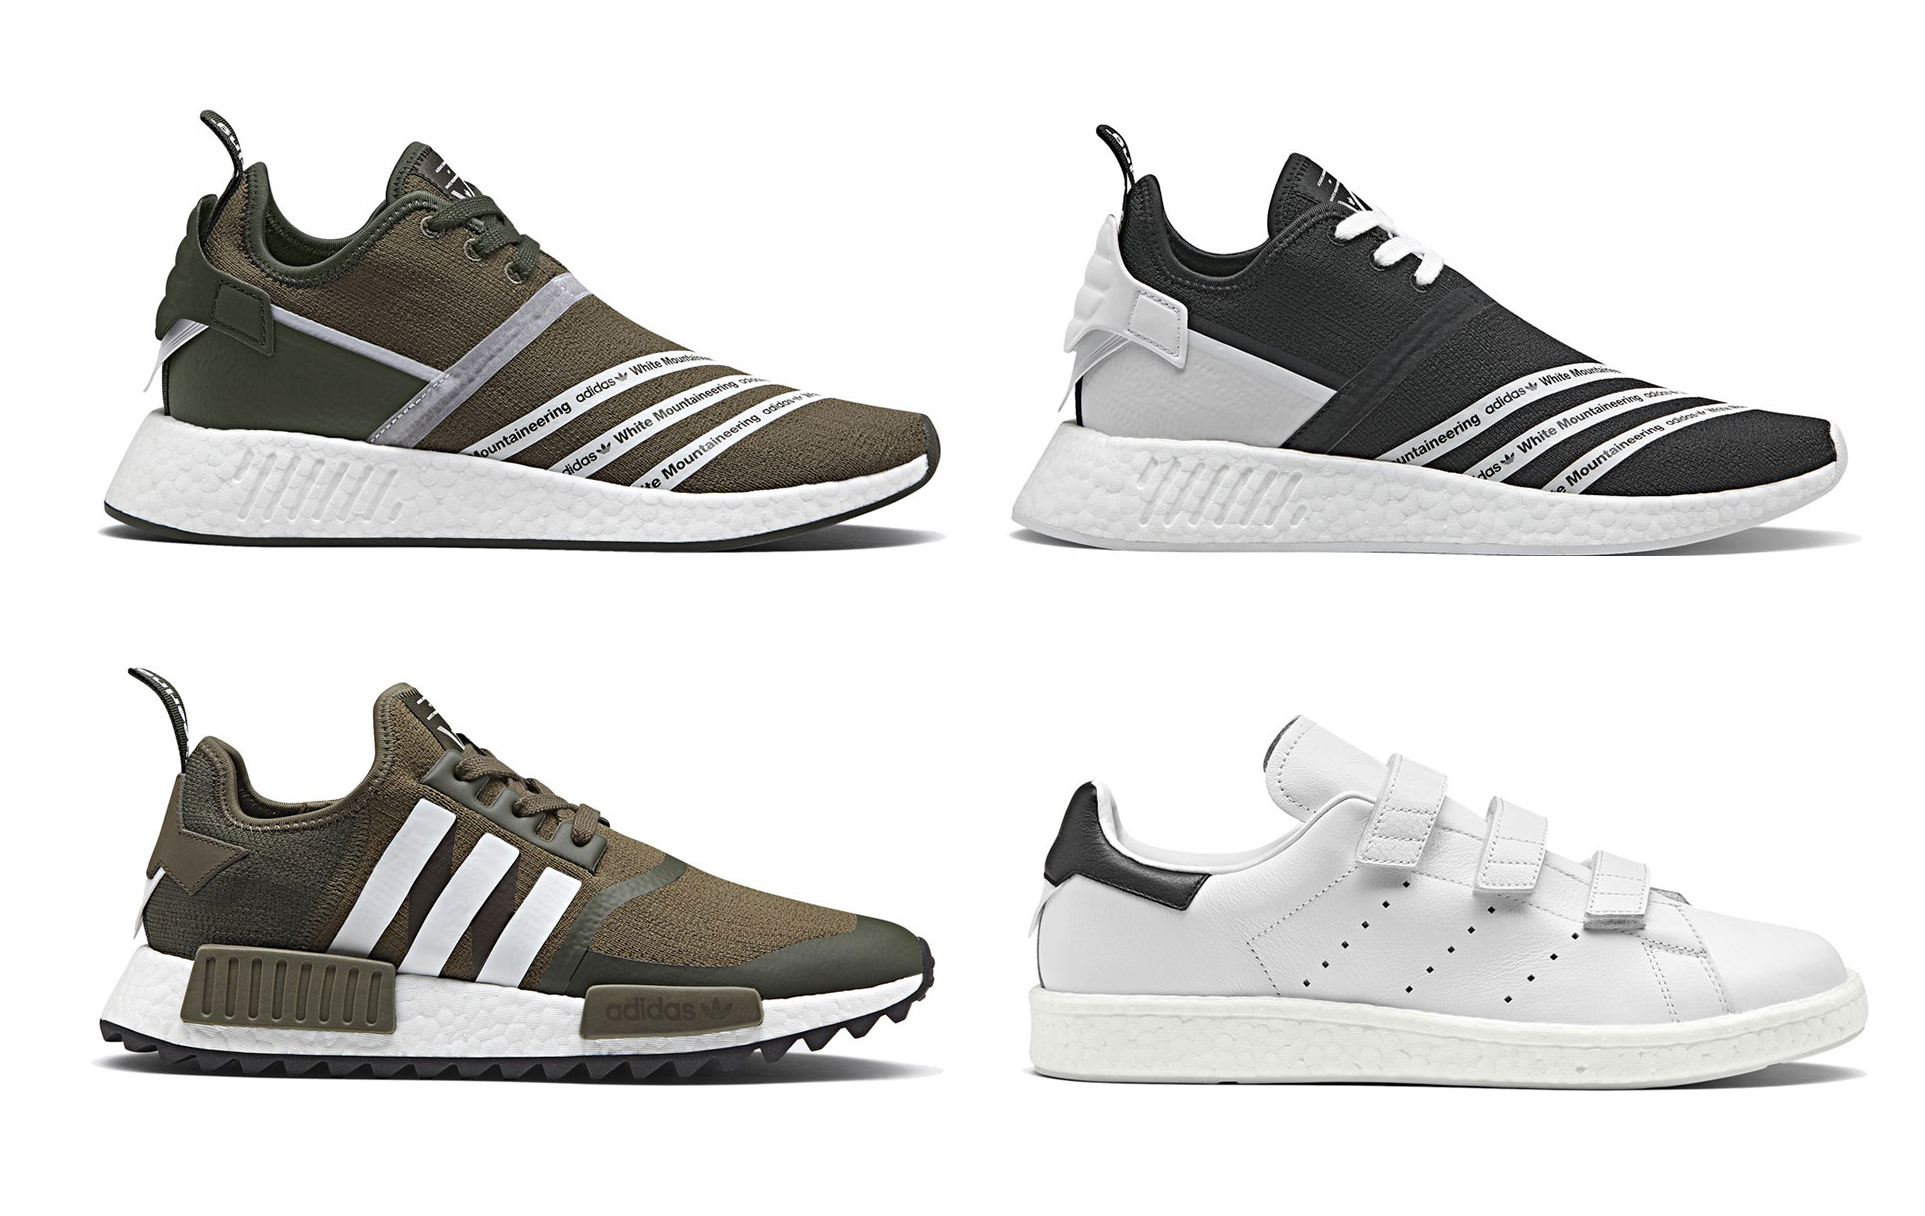 detailed pictures bae23 5225a adidas and White Mountaineering Have A Surprise Drop This We